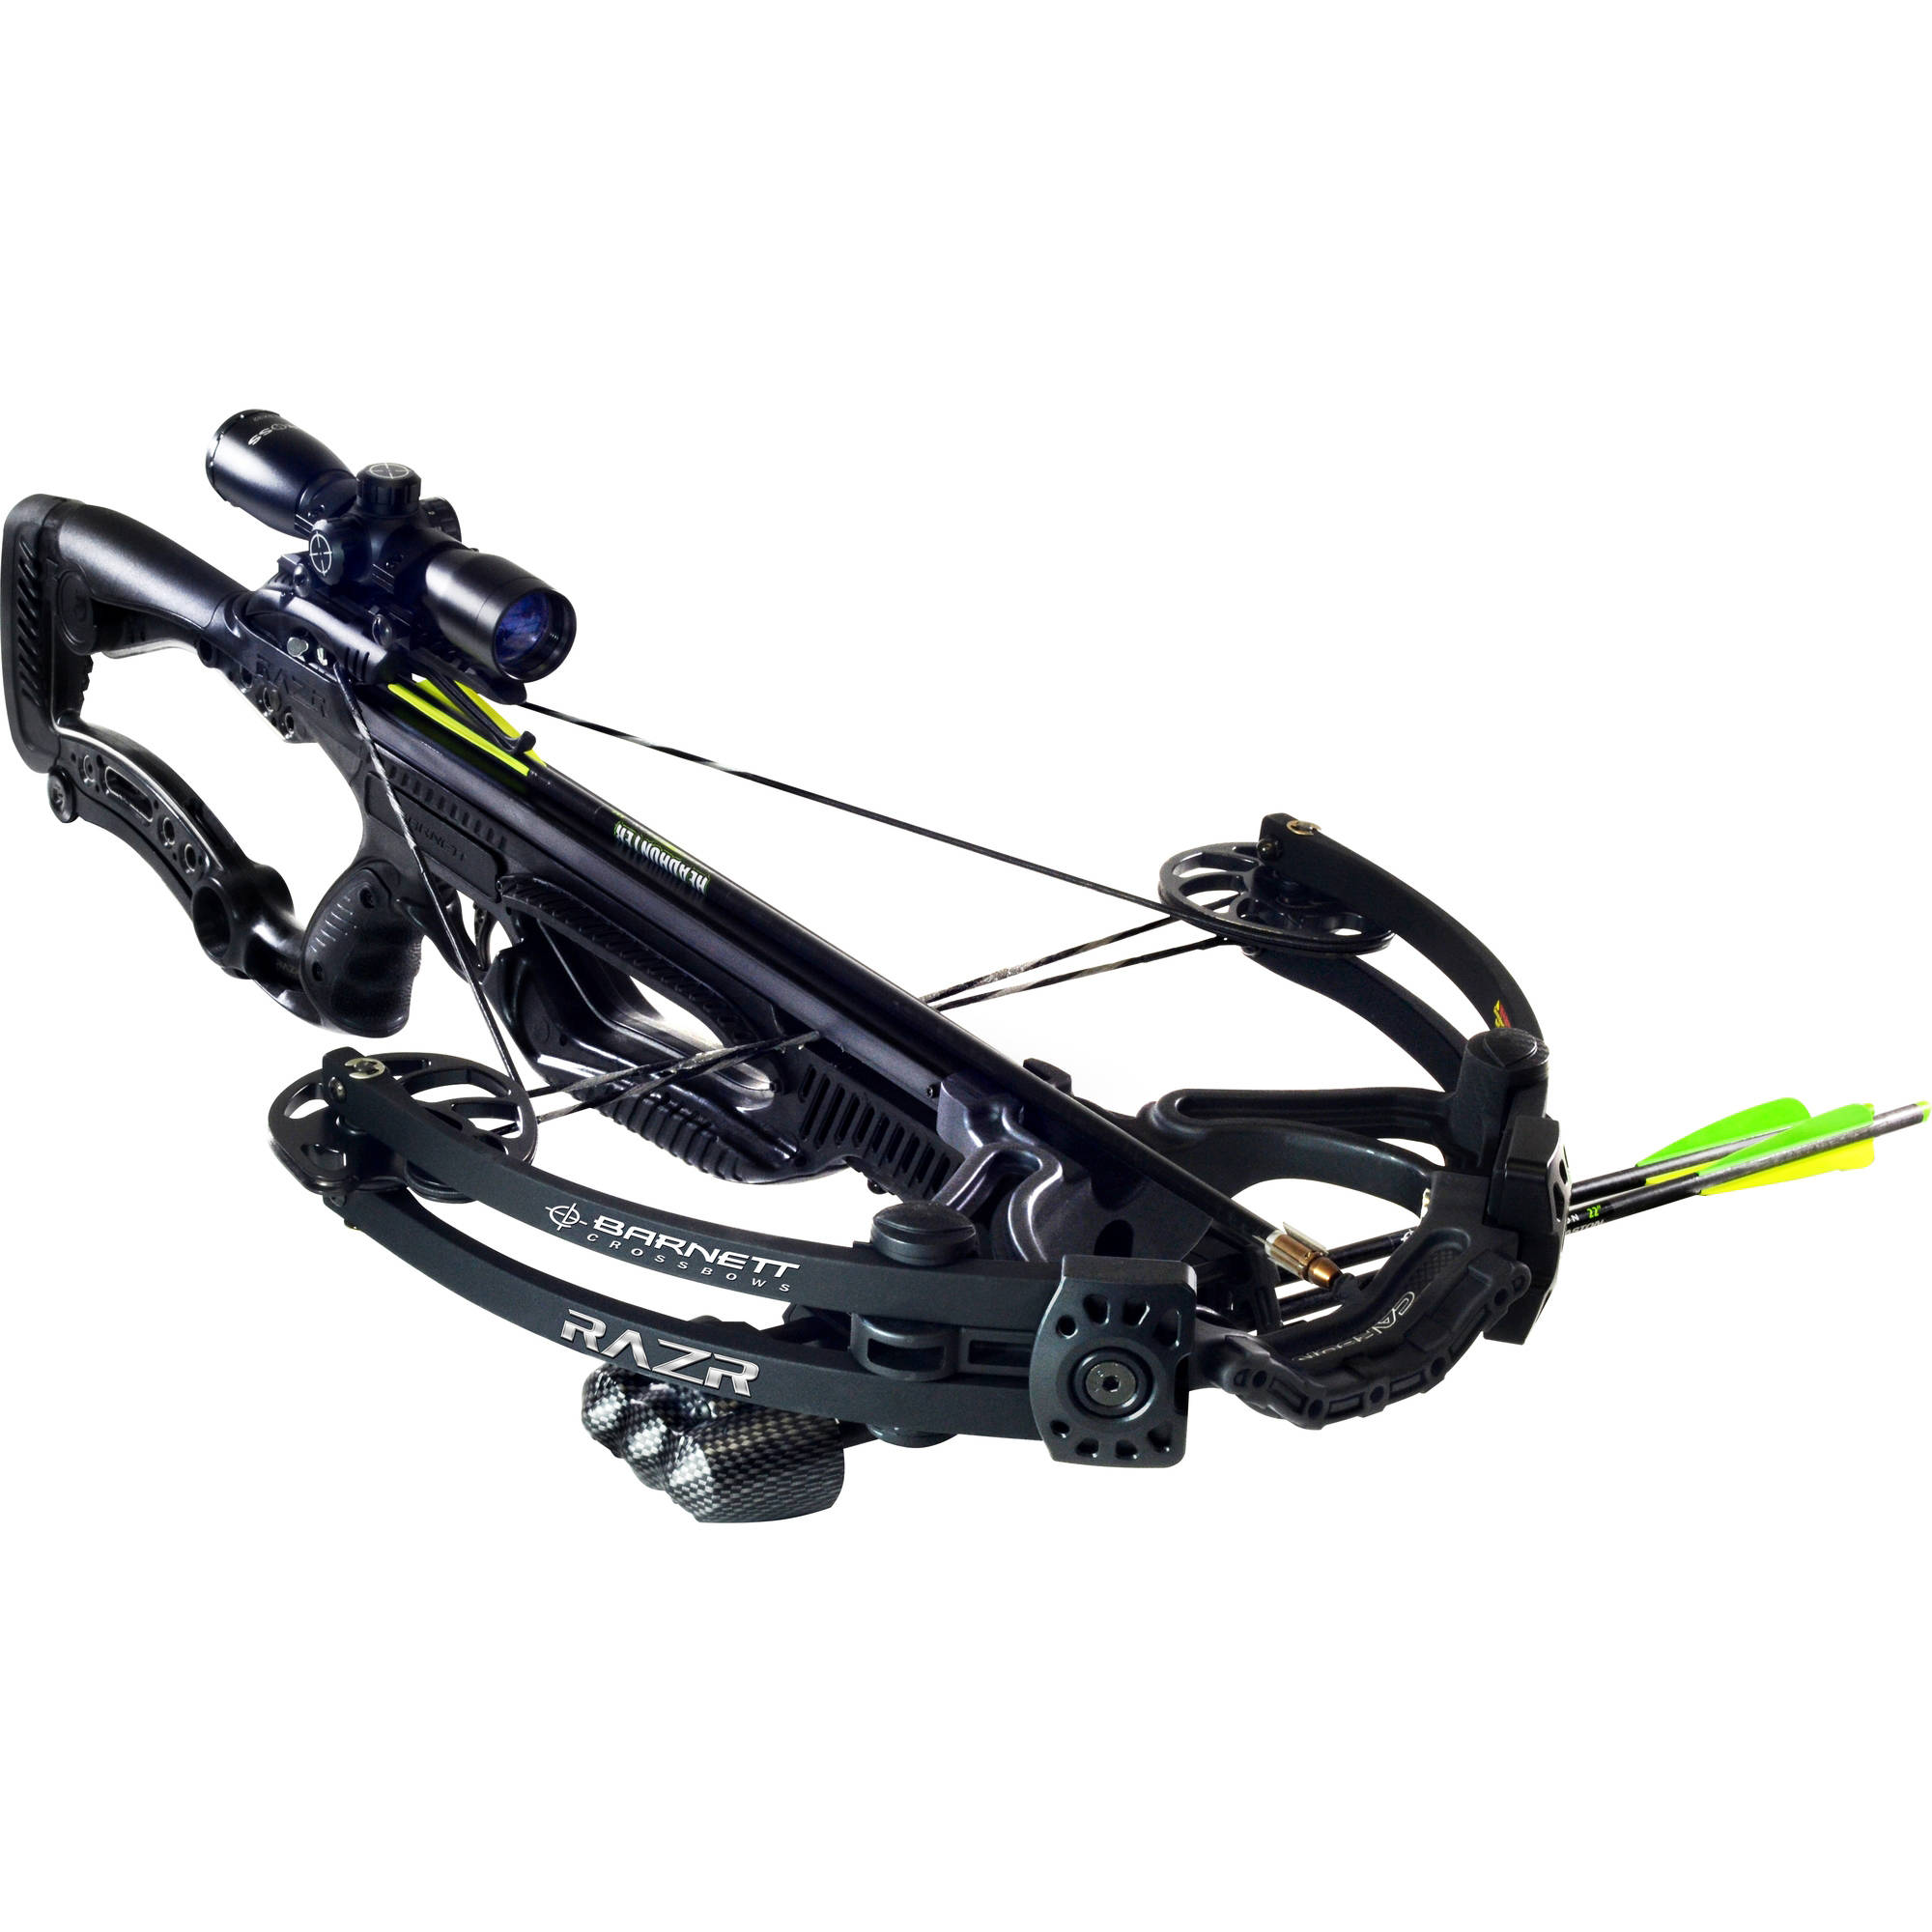 Barnett Razr Game Hunting Crossbow Speed Maximizing Small Grain Crossbow with Scope Hunting Package by Barnett